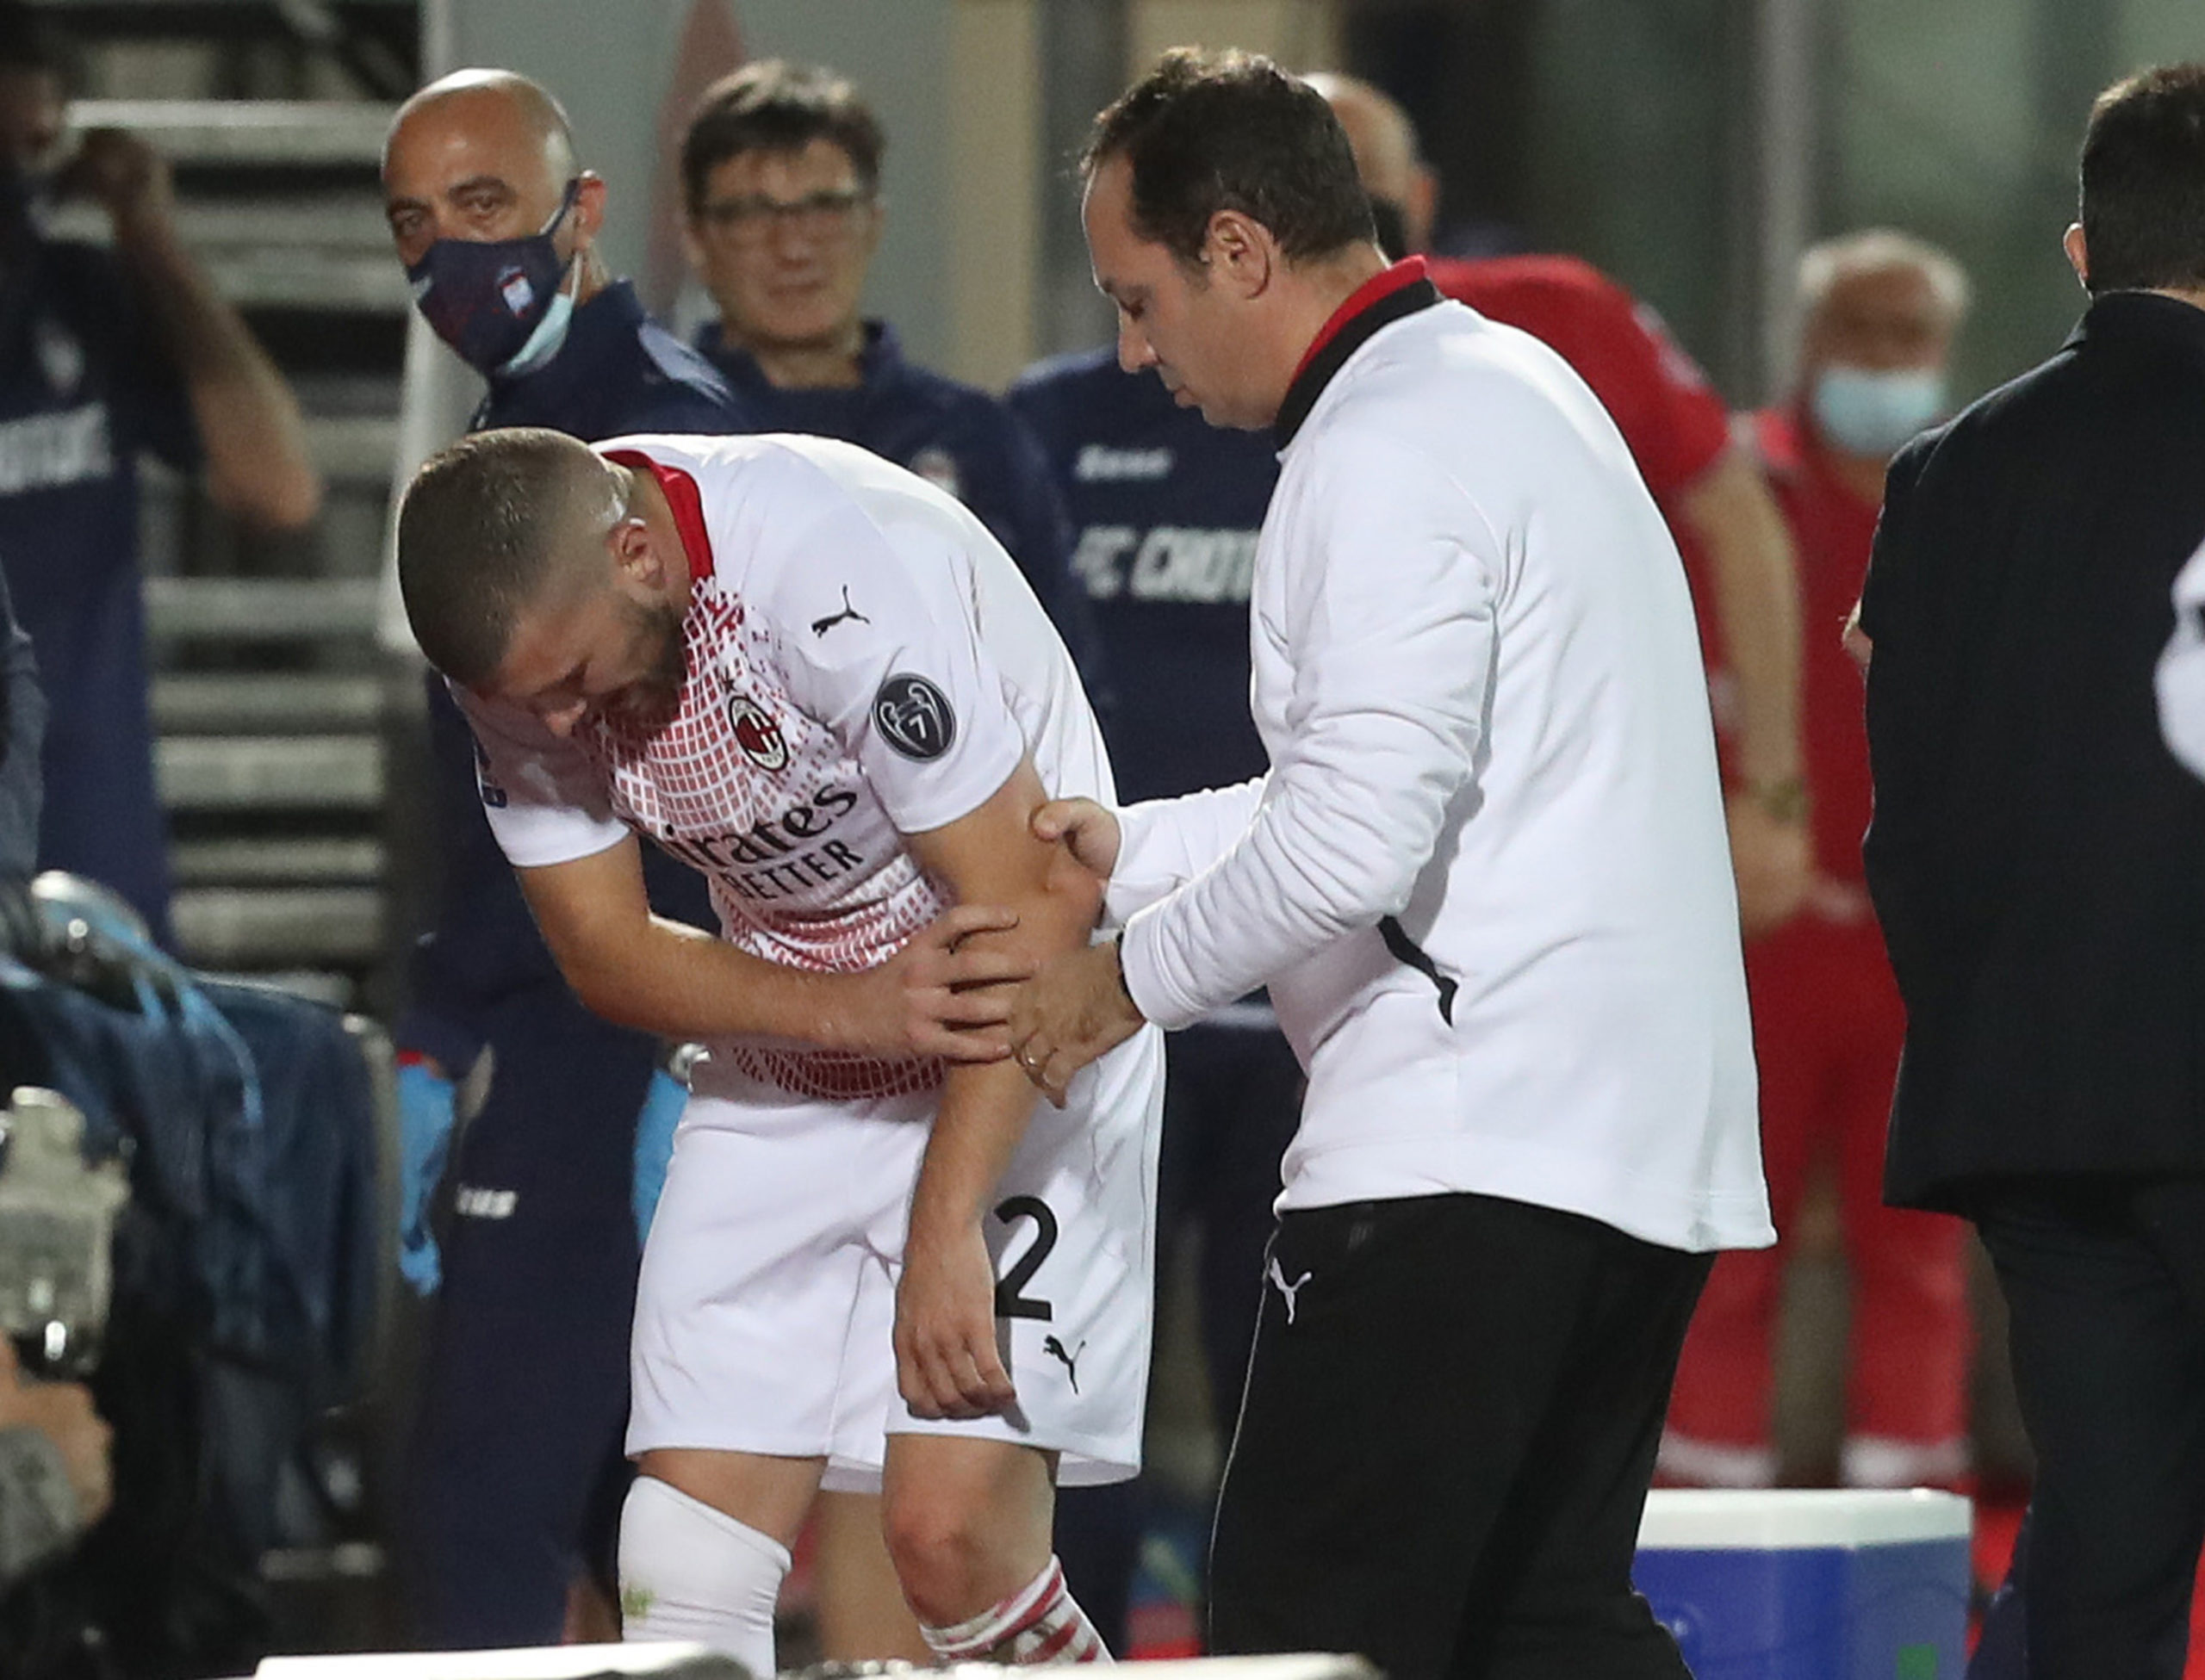 Ante Rebic is suffering from an elbow injury